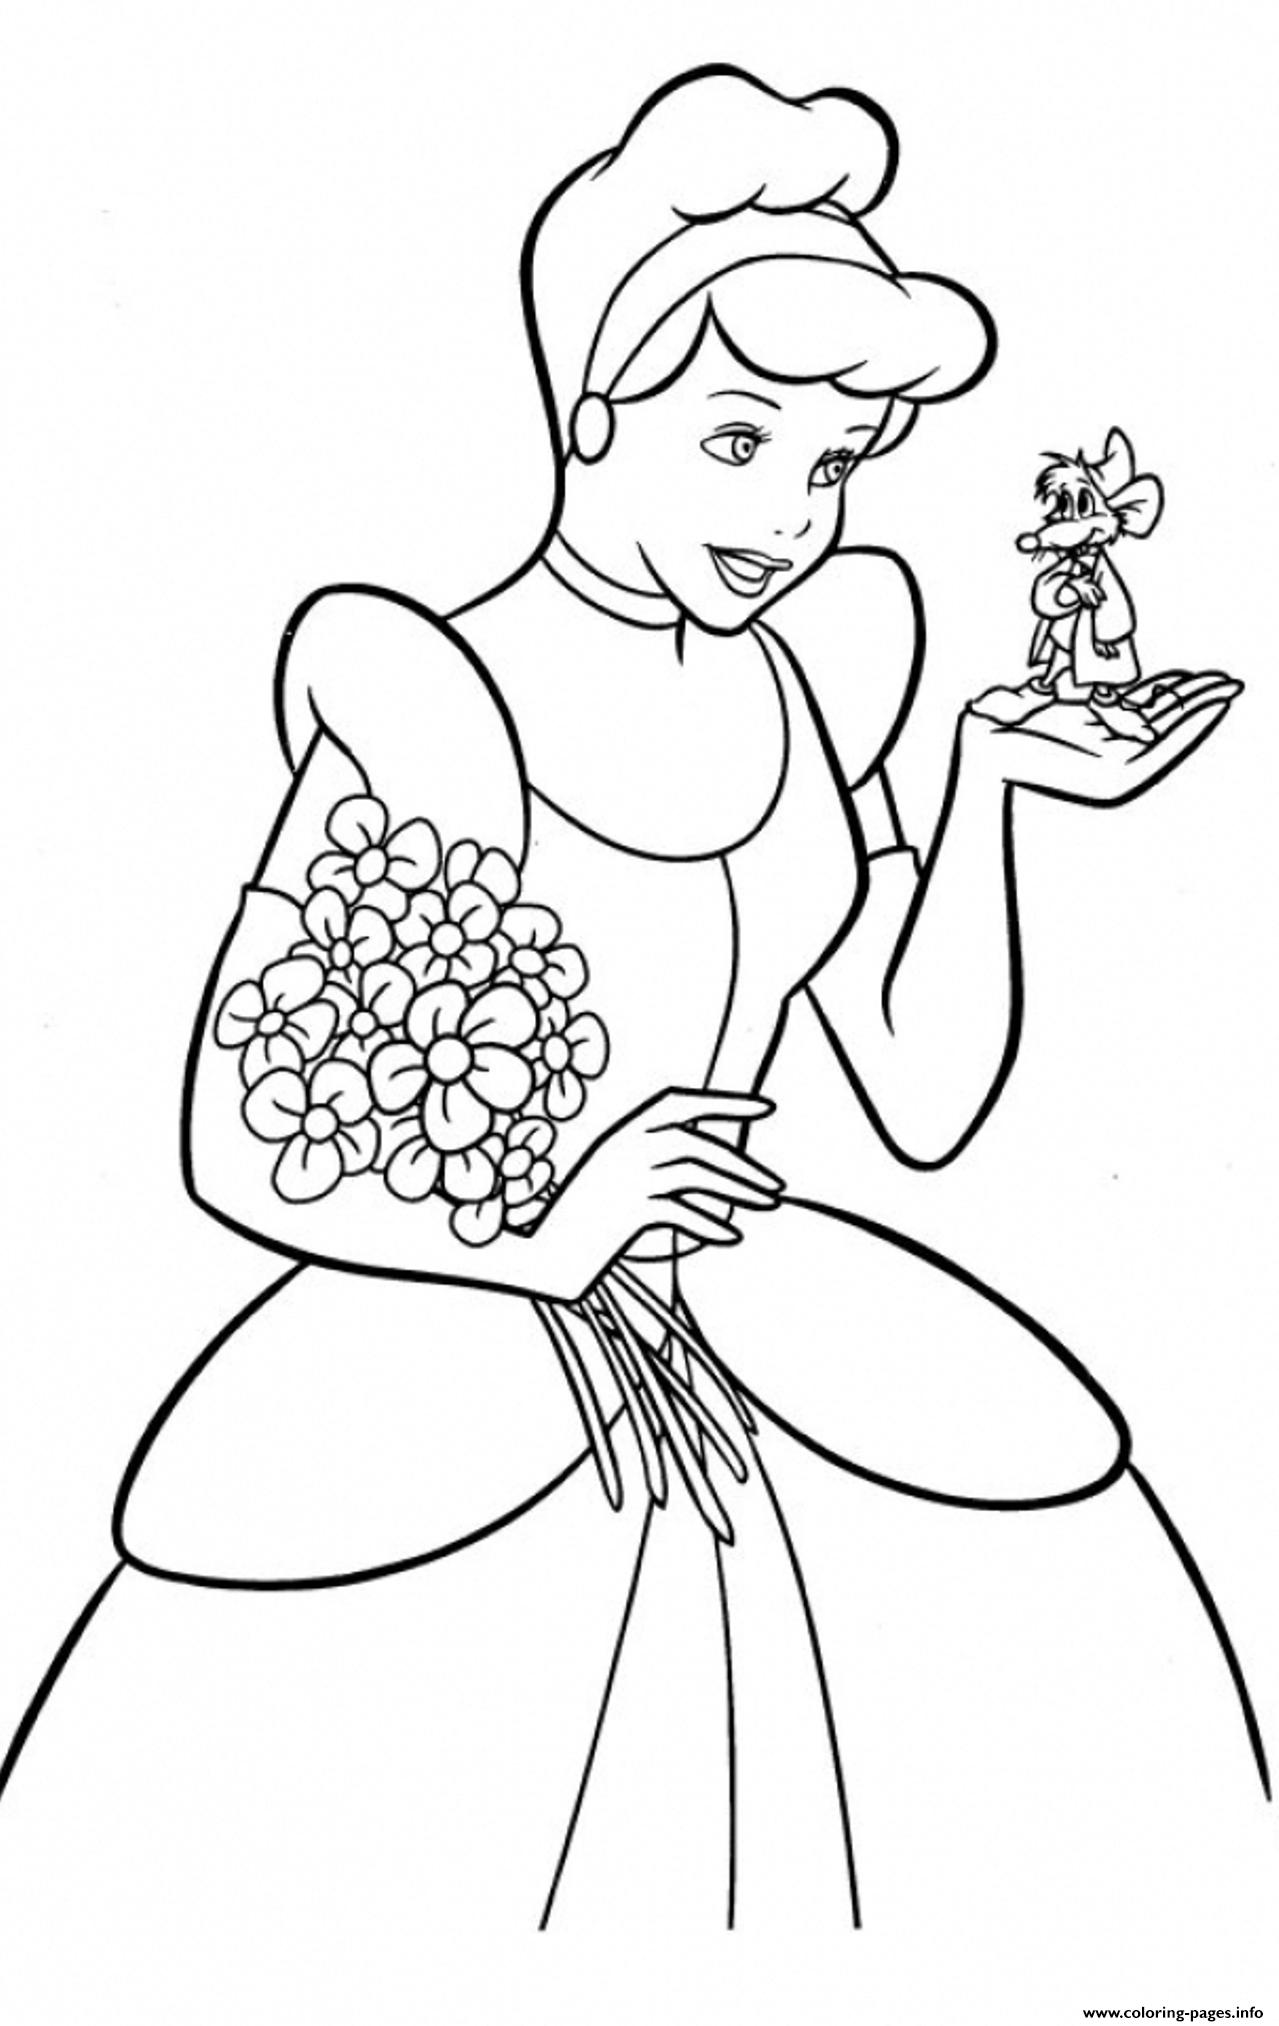 princess coloring pages online online disney coloring pages printable kids colouring princess pages online coloring